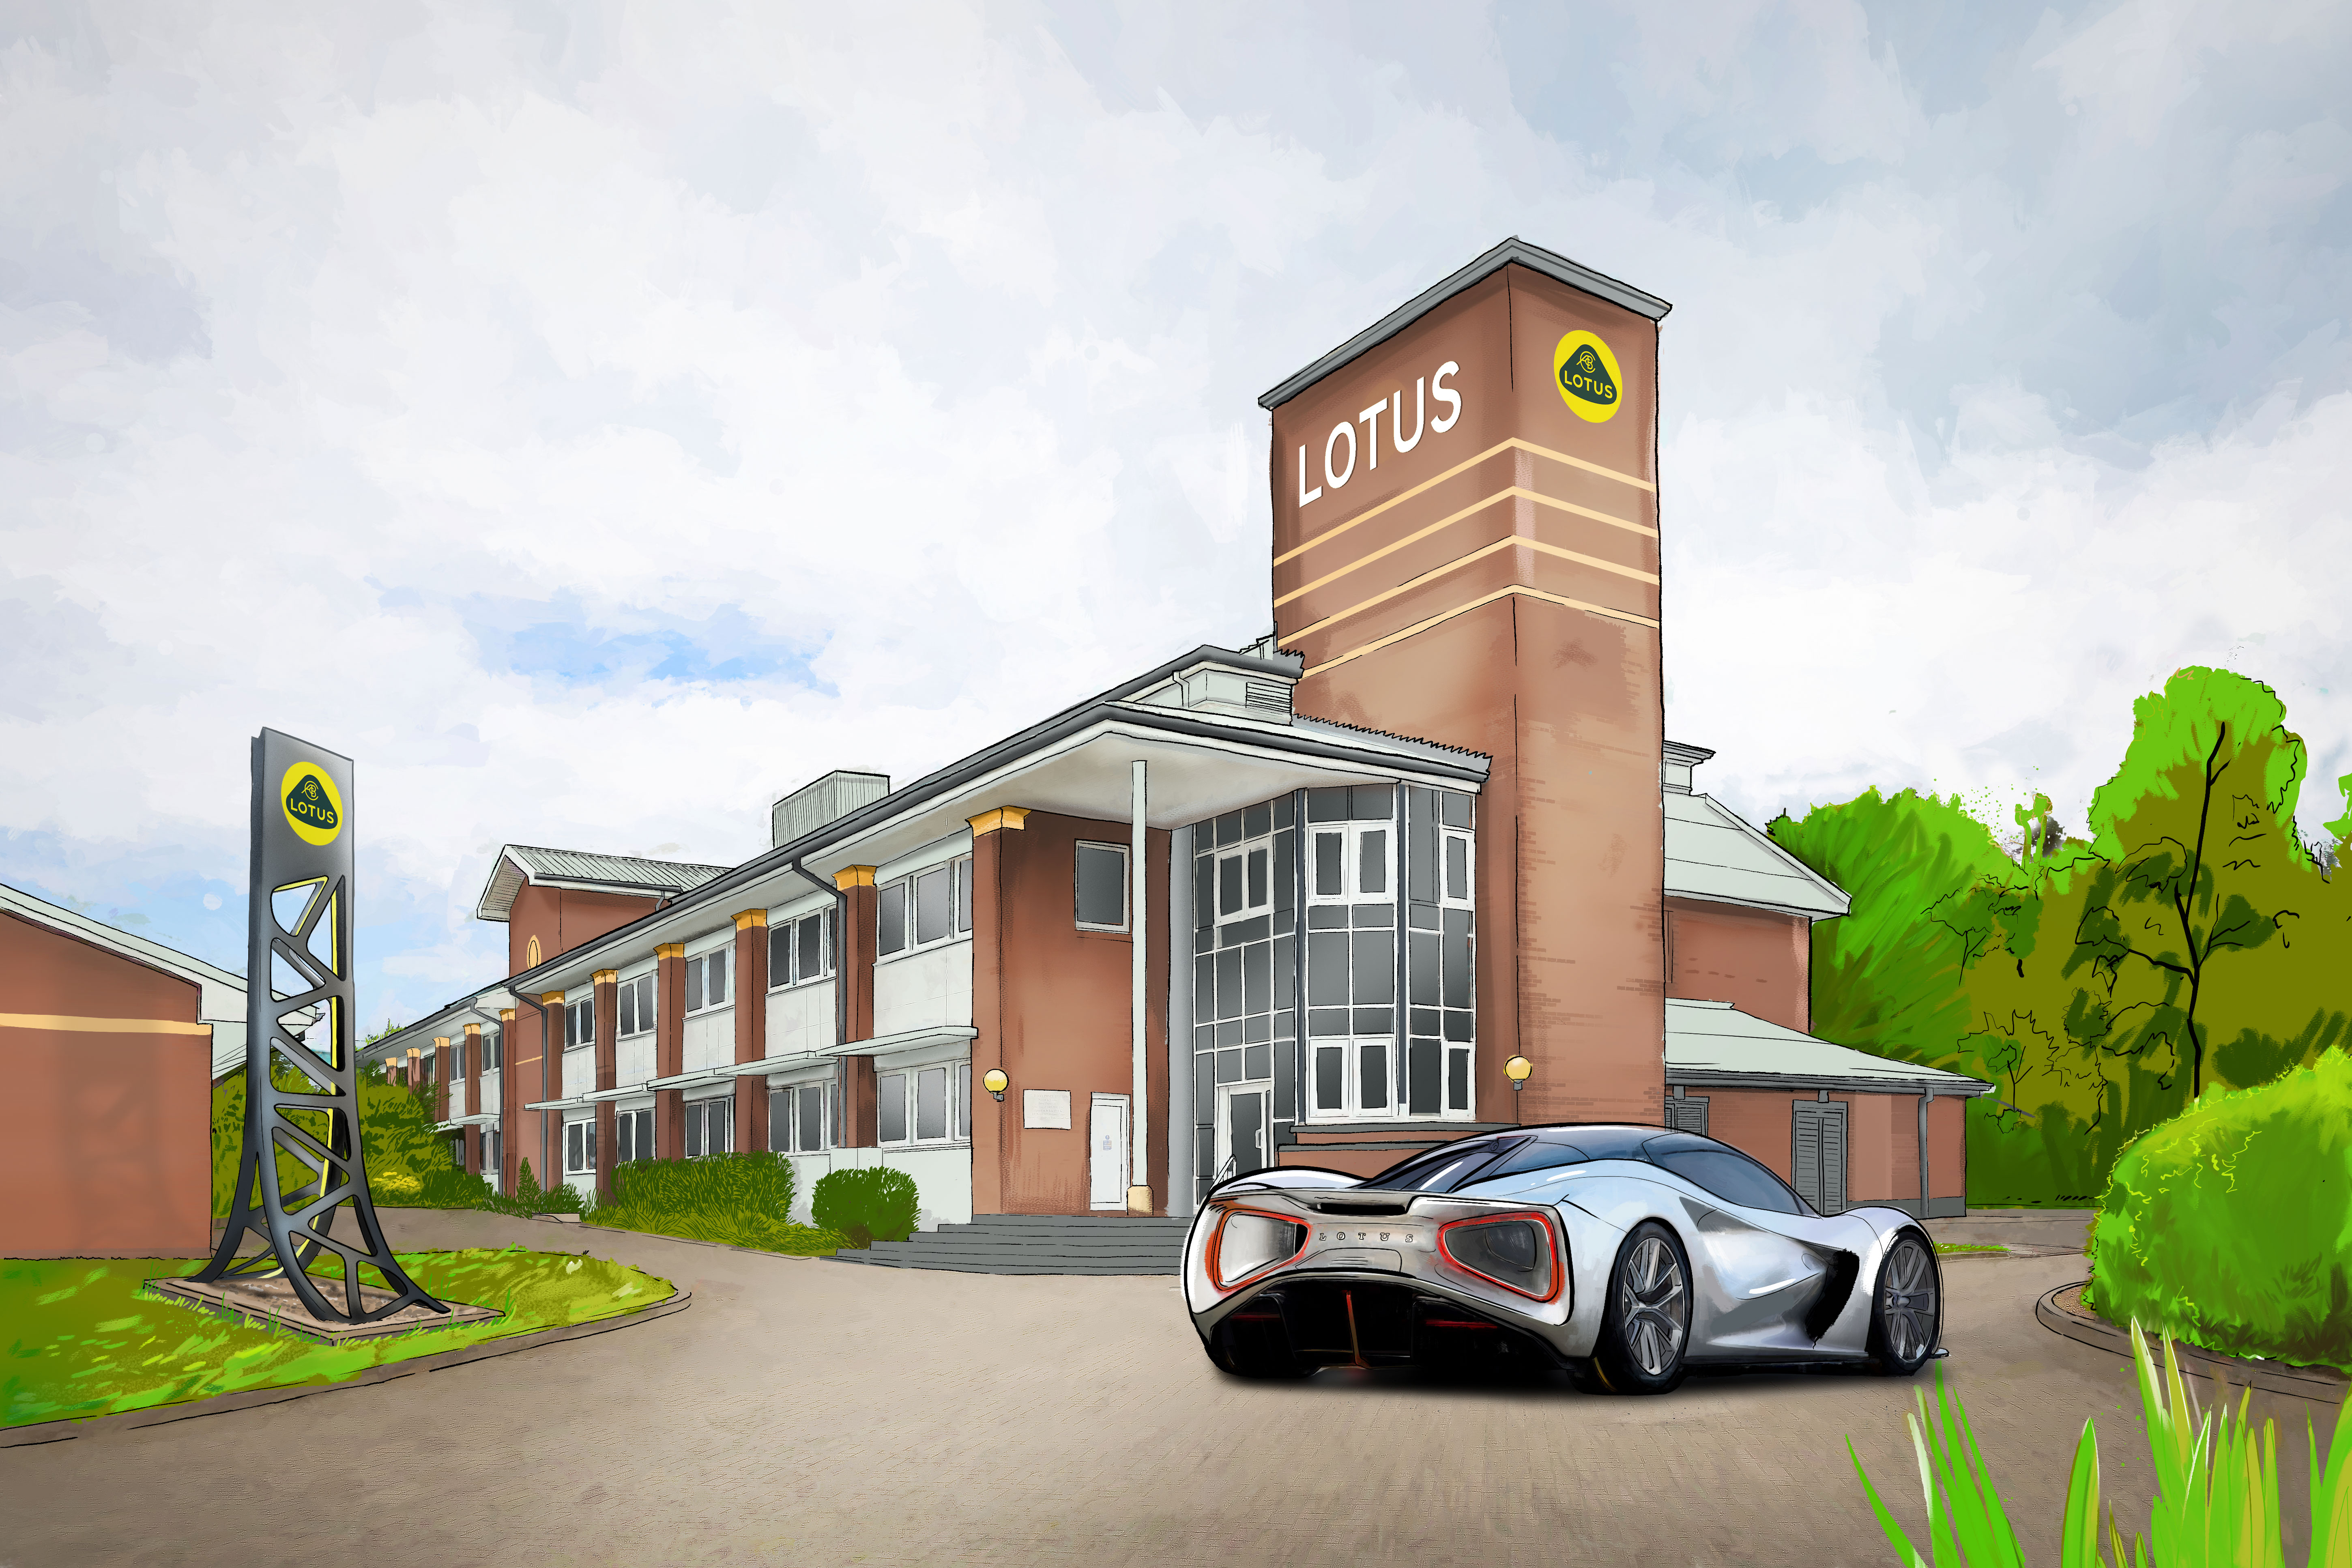 2020-07/1595512132_lotus-engineering-illustration-1-final